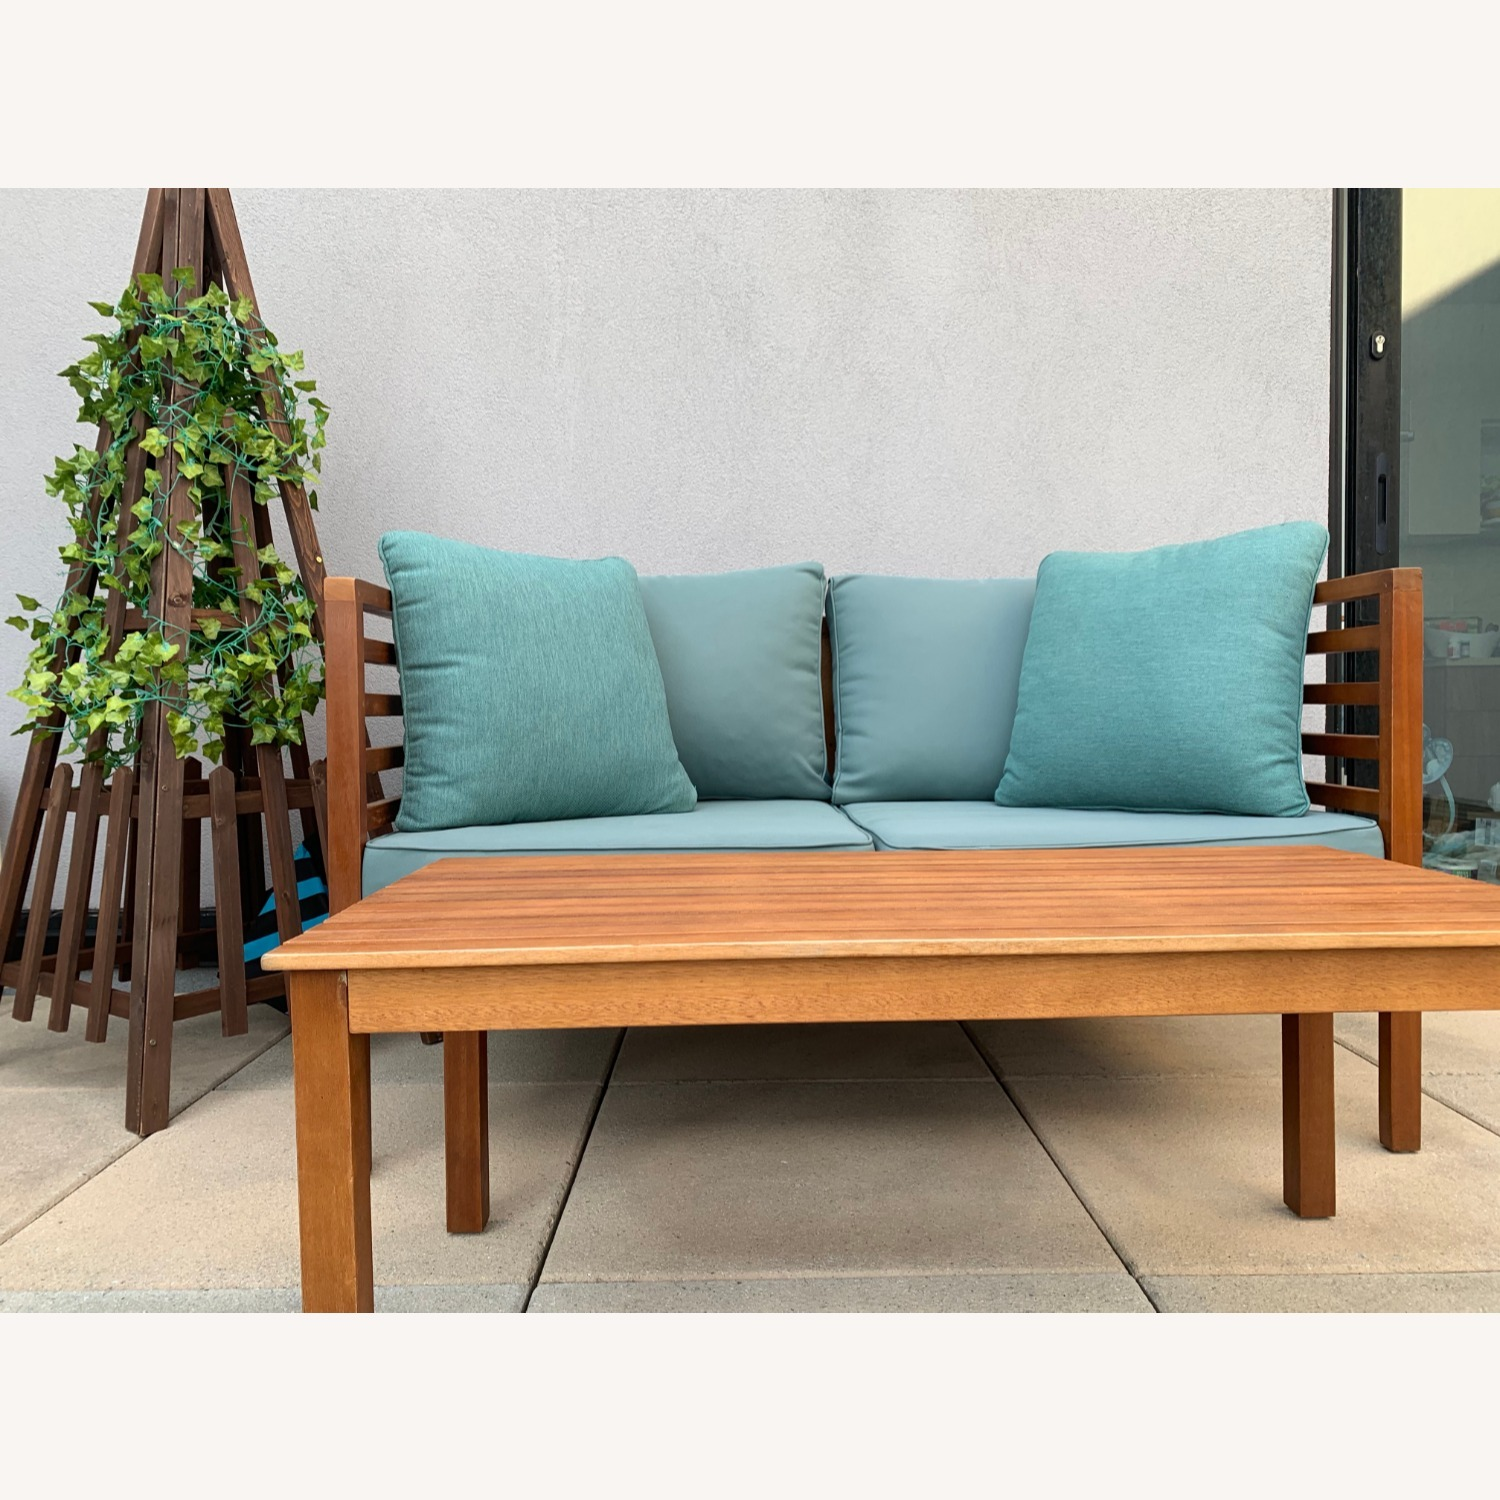 Patio Loveseat + Table + Obelisk With Faux Ivy - image-6